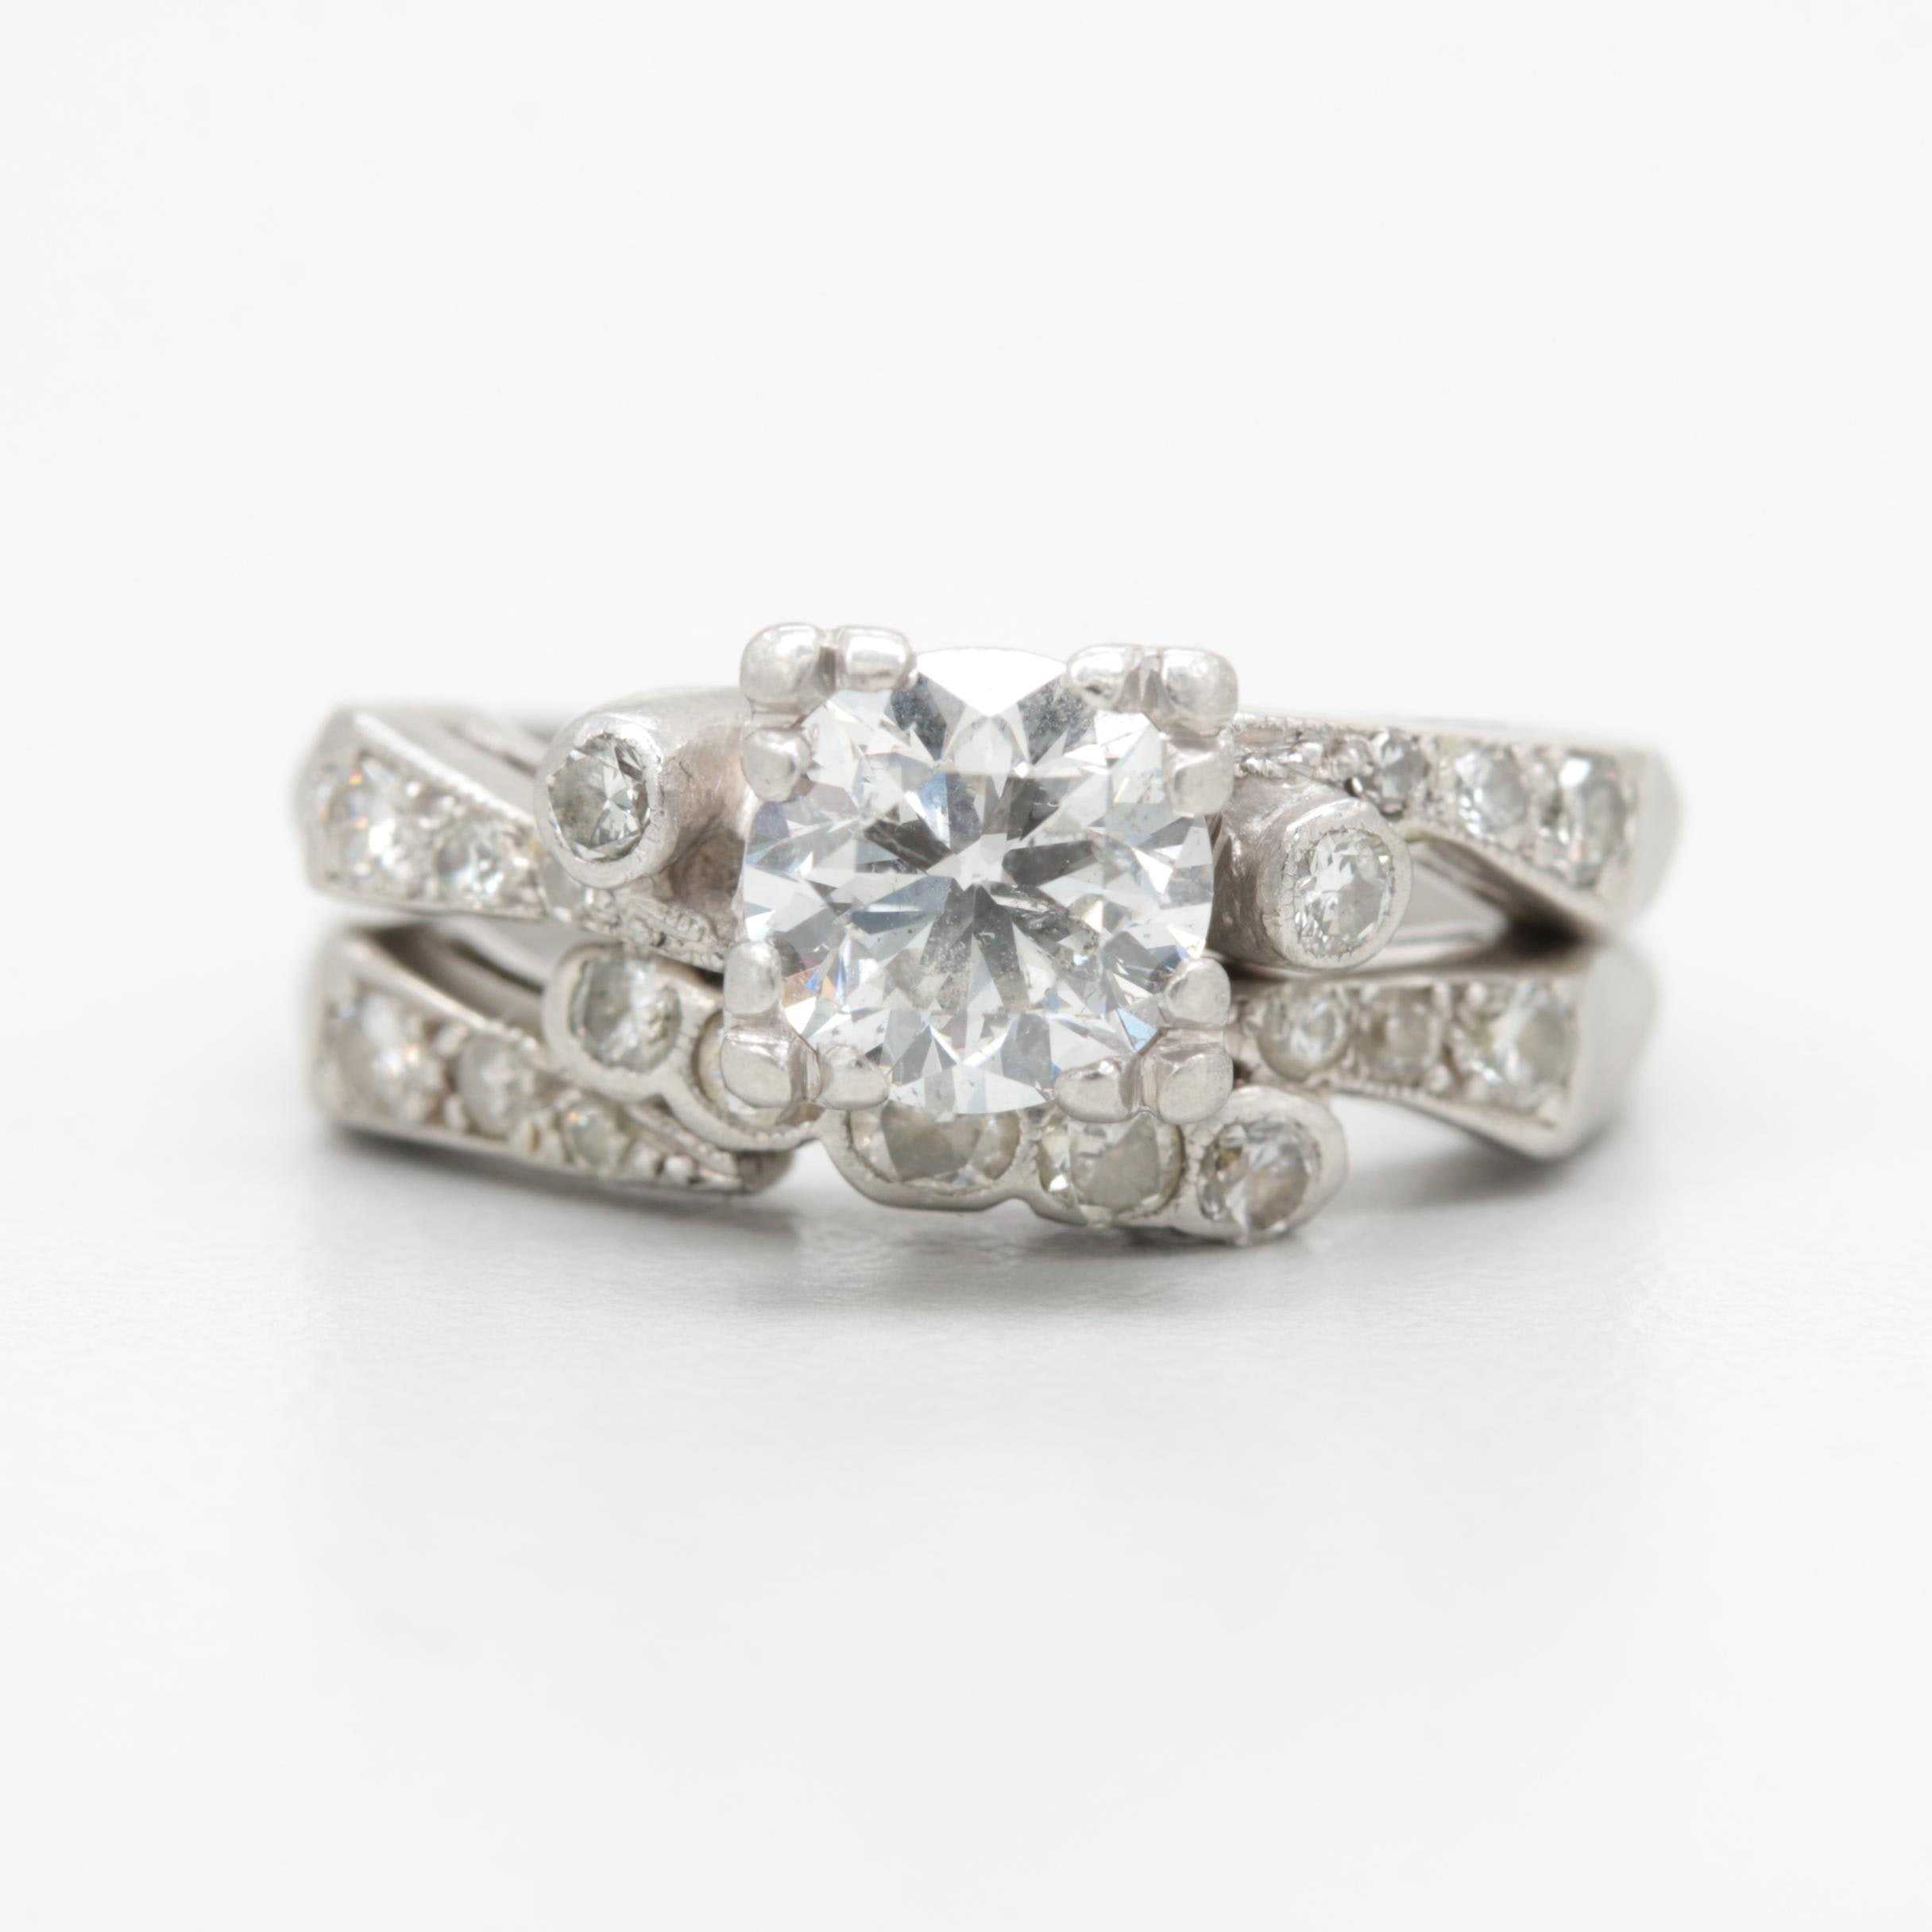 Vintage Platinum 1.42 CTW Diamond Ring Set